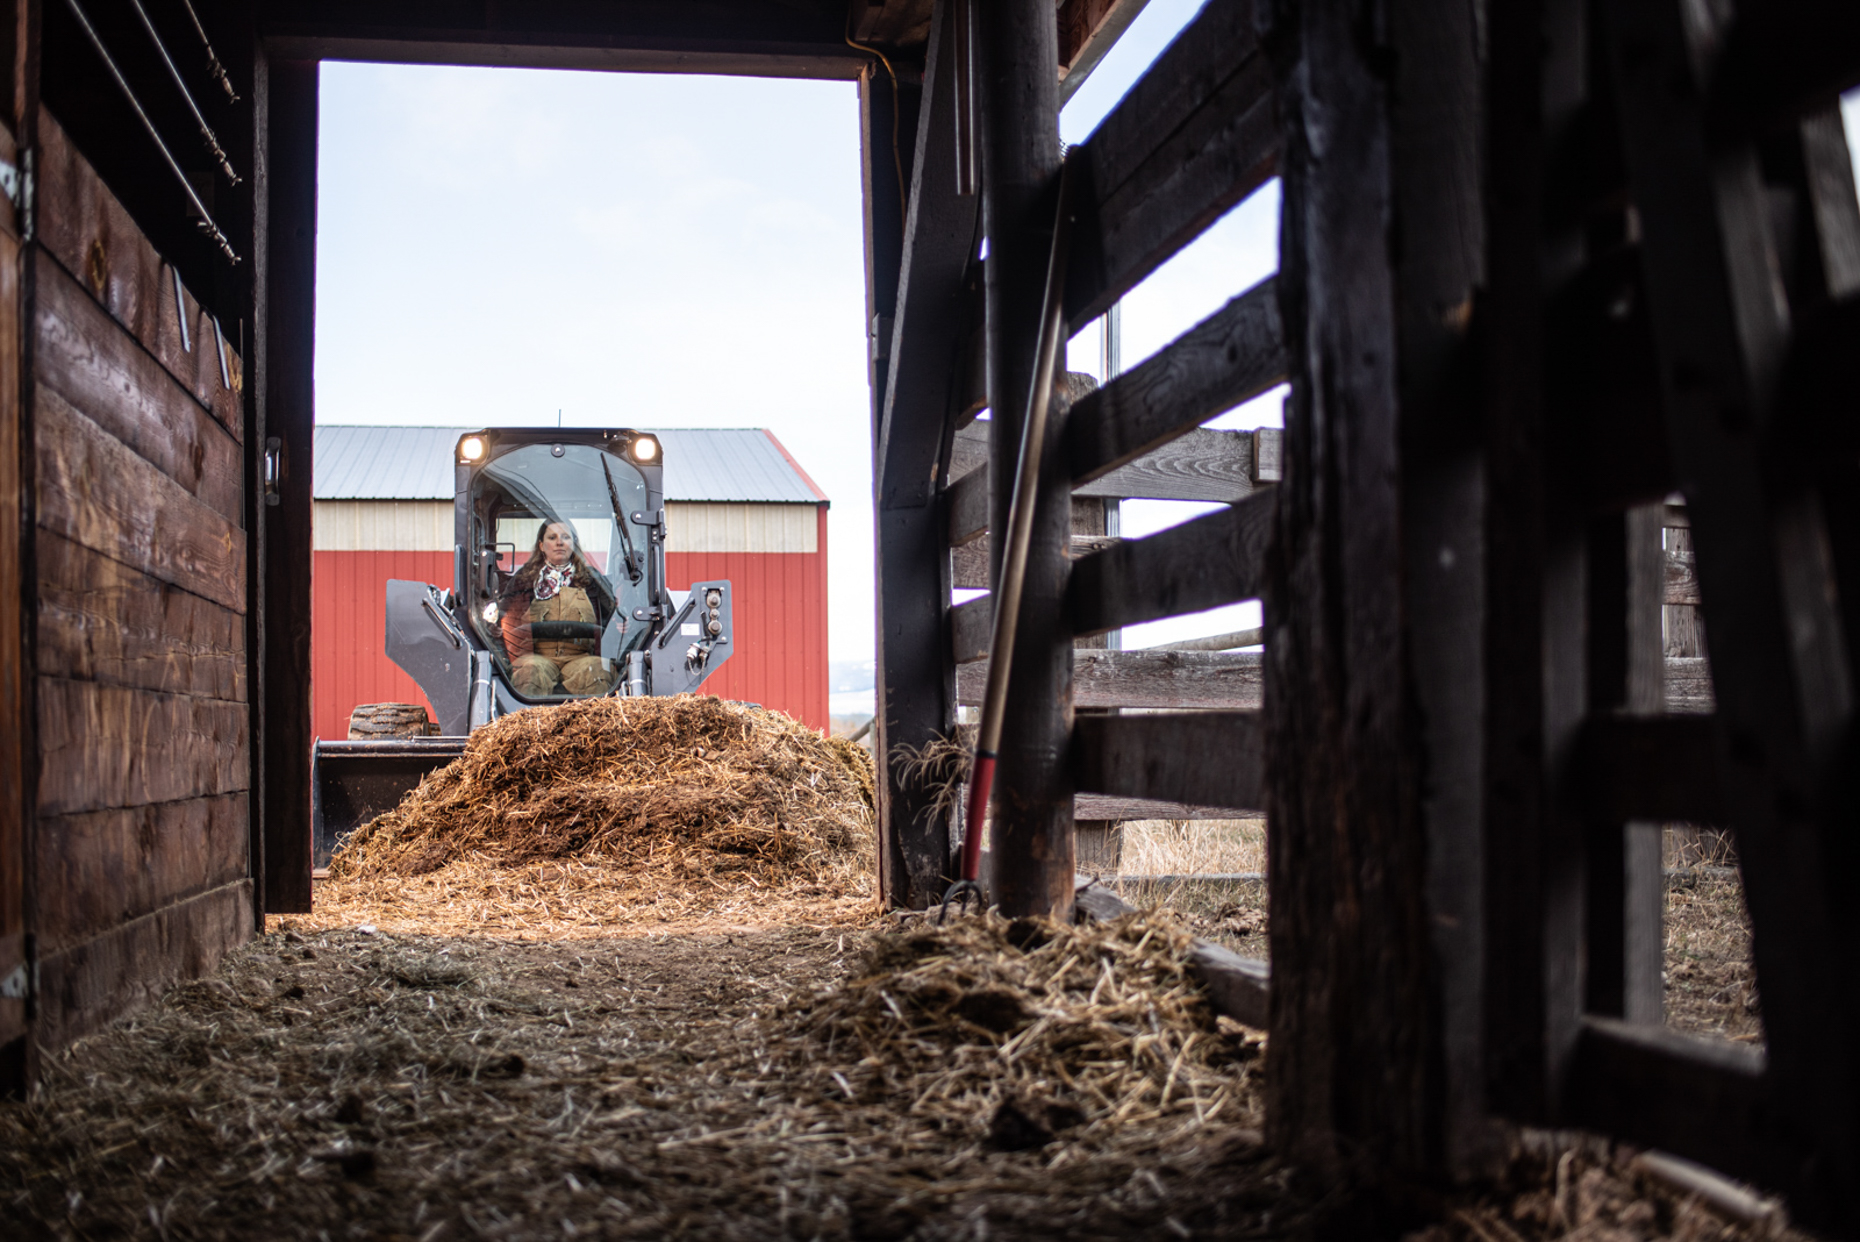 John Deere loader cleaning cattle pens. Isaac Miller Photography  | Agriculture & Industry Photographer  |  Commercial & Editorial photography  |   Missoula + San Antonio